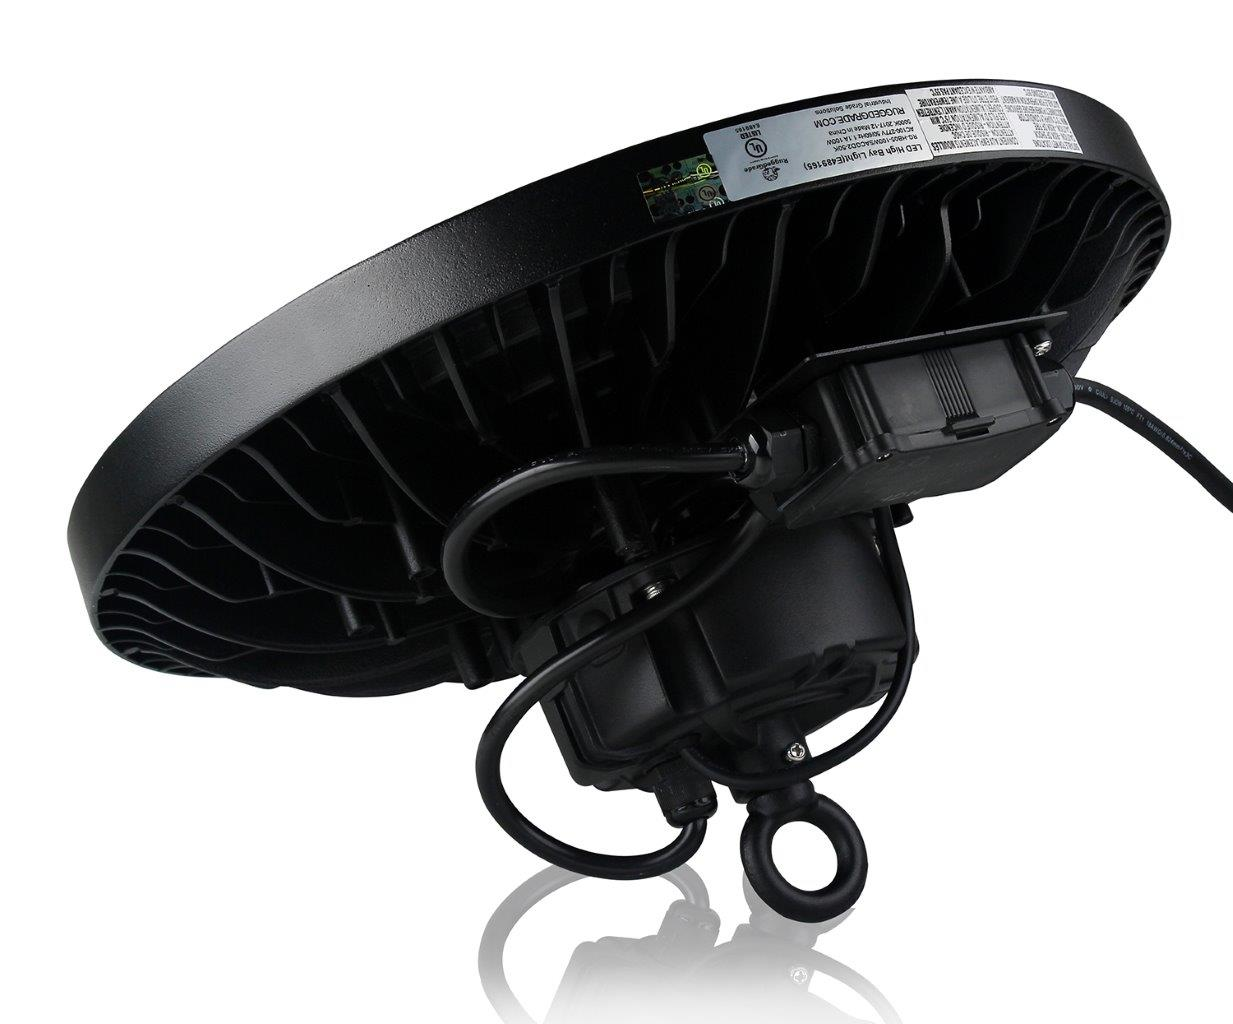 100 Watt Motion Sensor Led High Bay Ufo Light 14 500